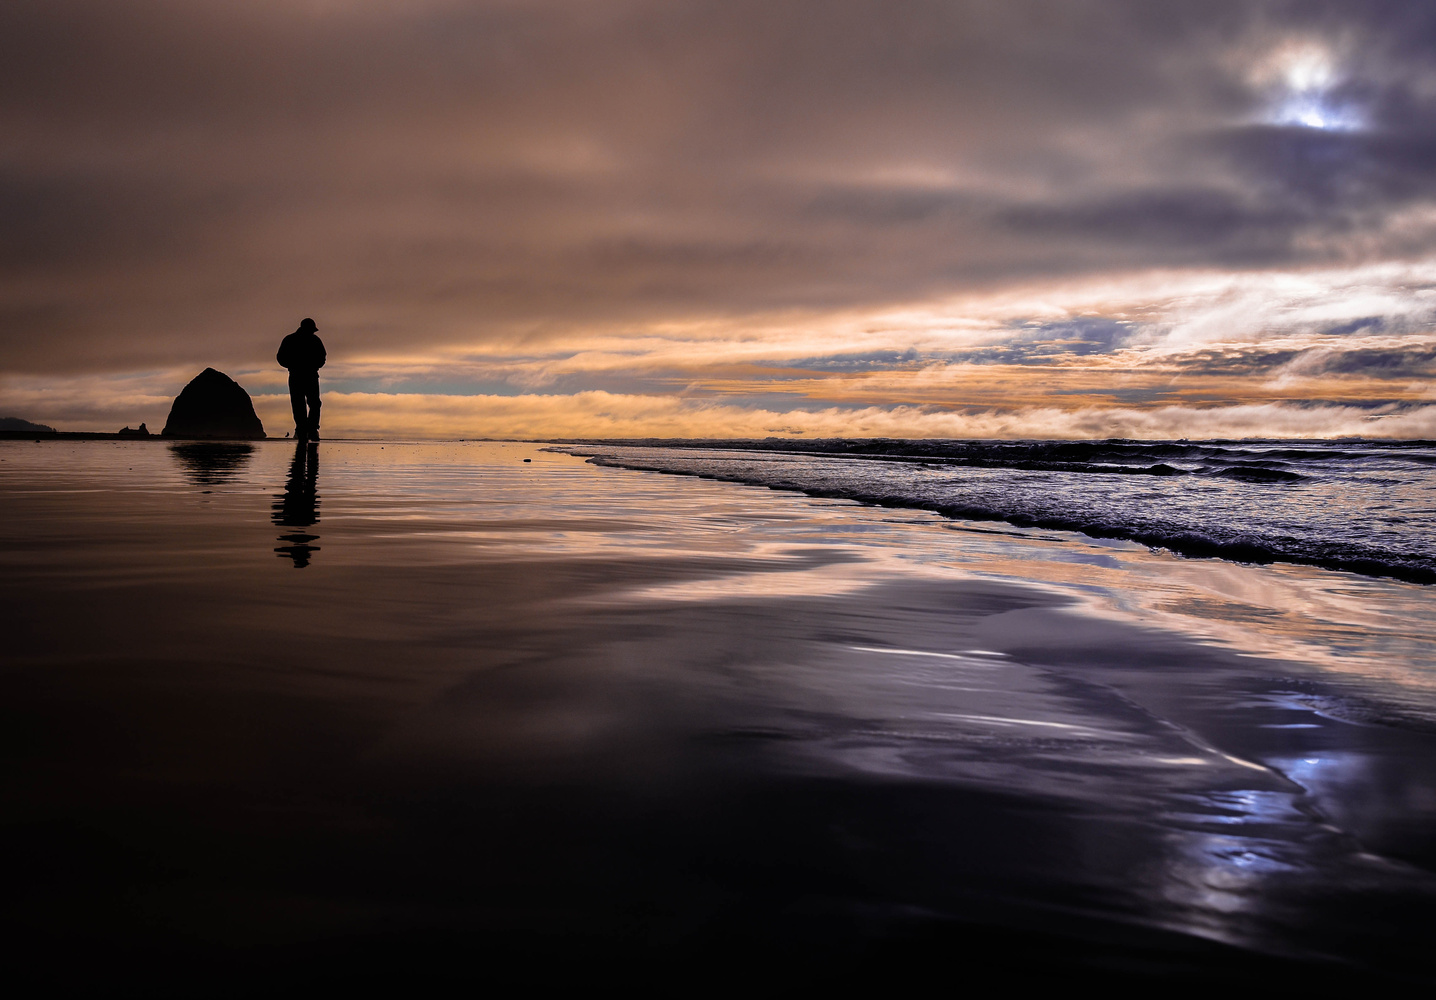 Lonely man on the beach by Gert-Jan Jans